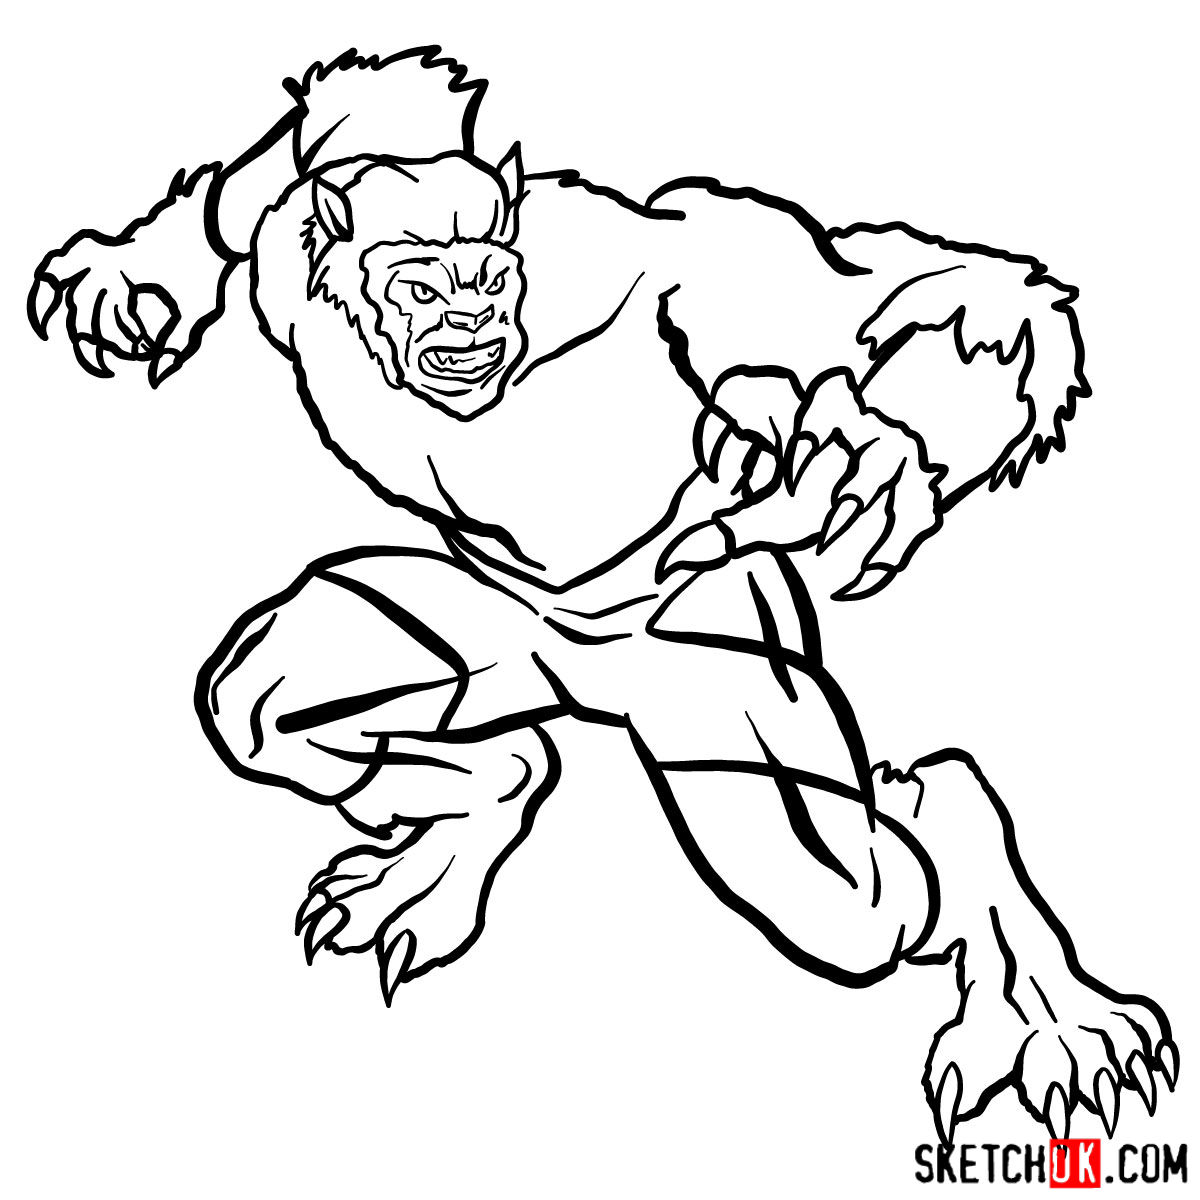 How to draw Beast (X-Men mutant) - step 14